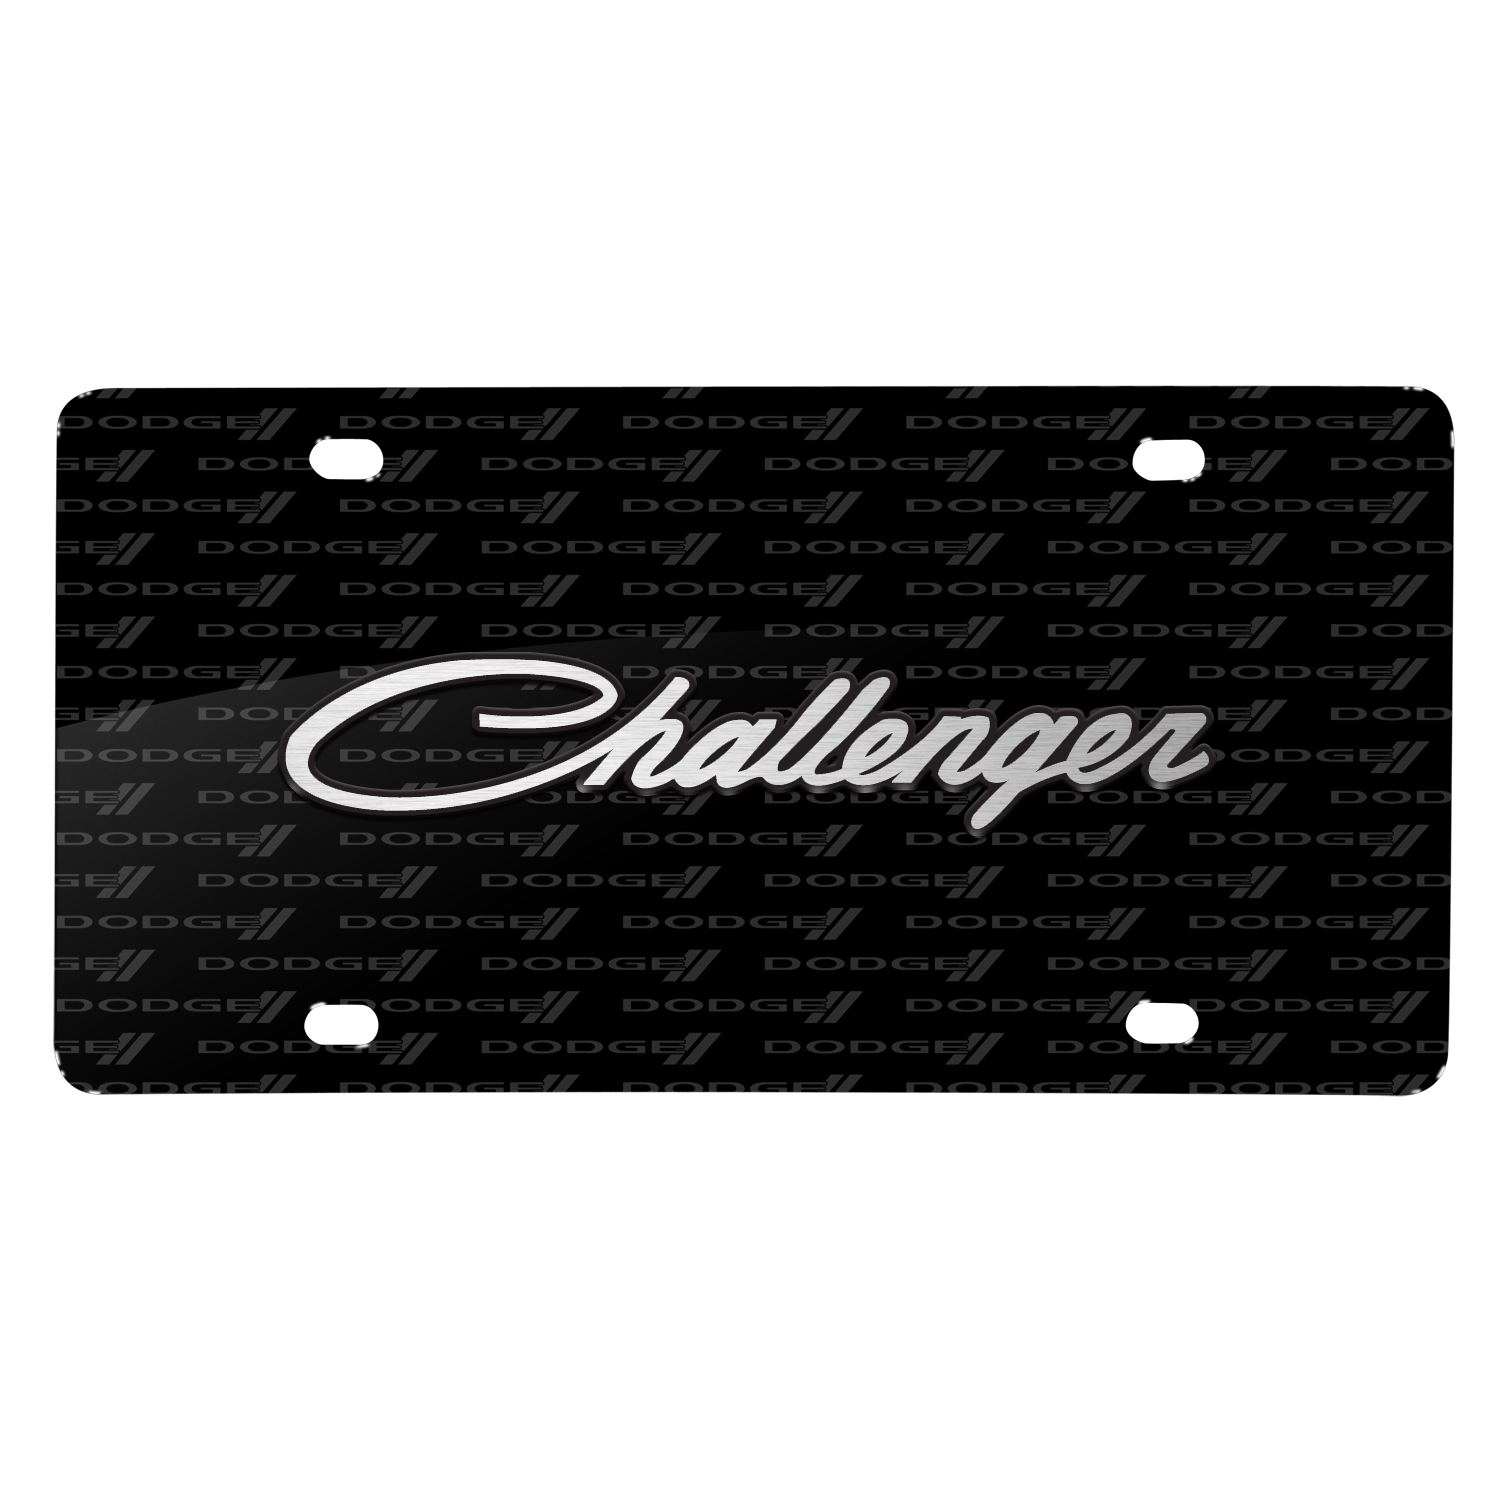 Dodge Challenger Classic 3D Logo on Logo Pattern Black Aluminum License Plate